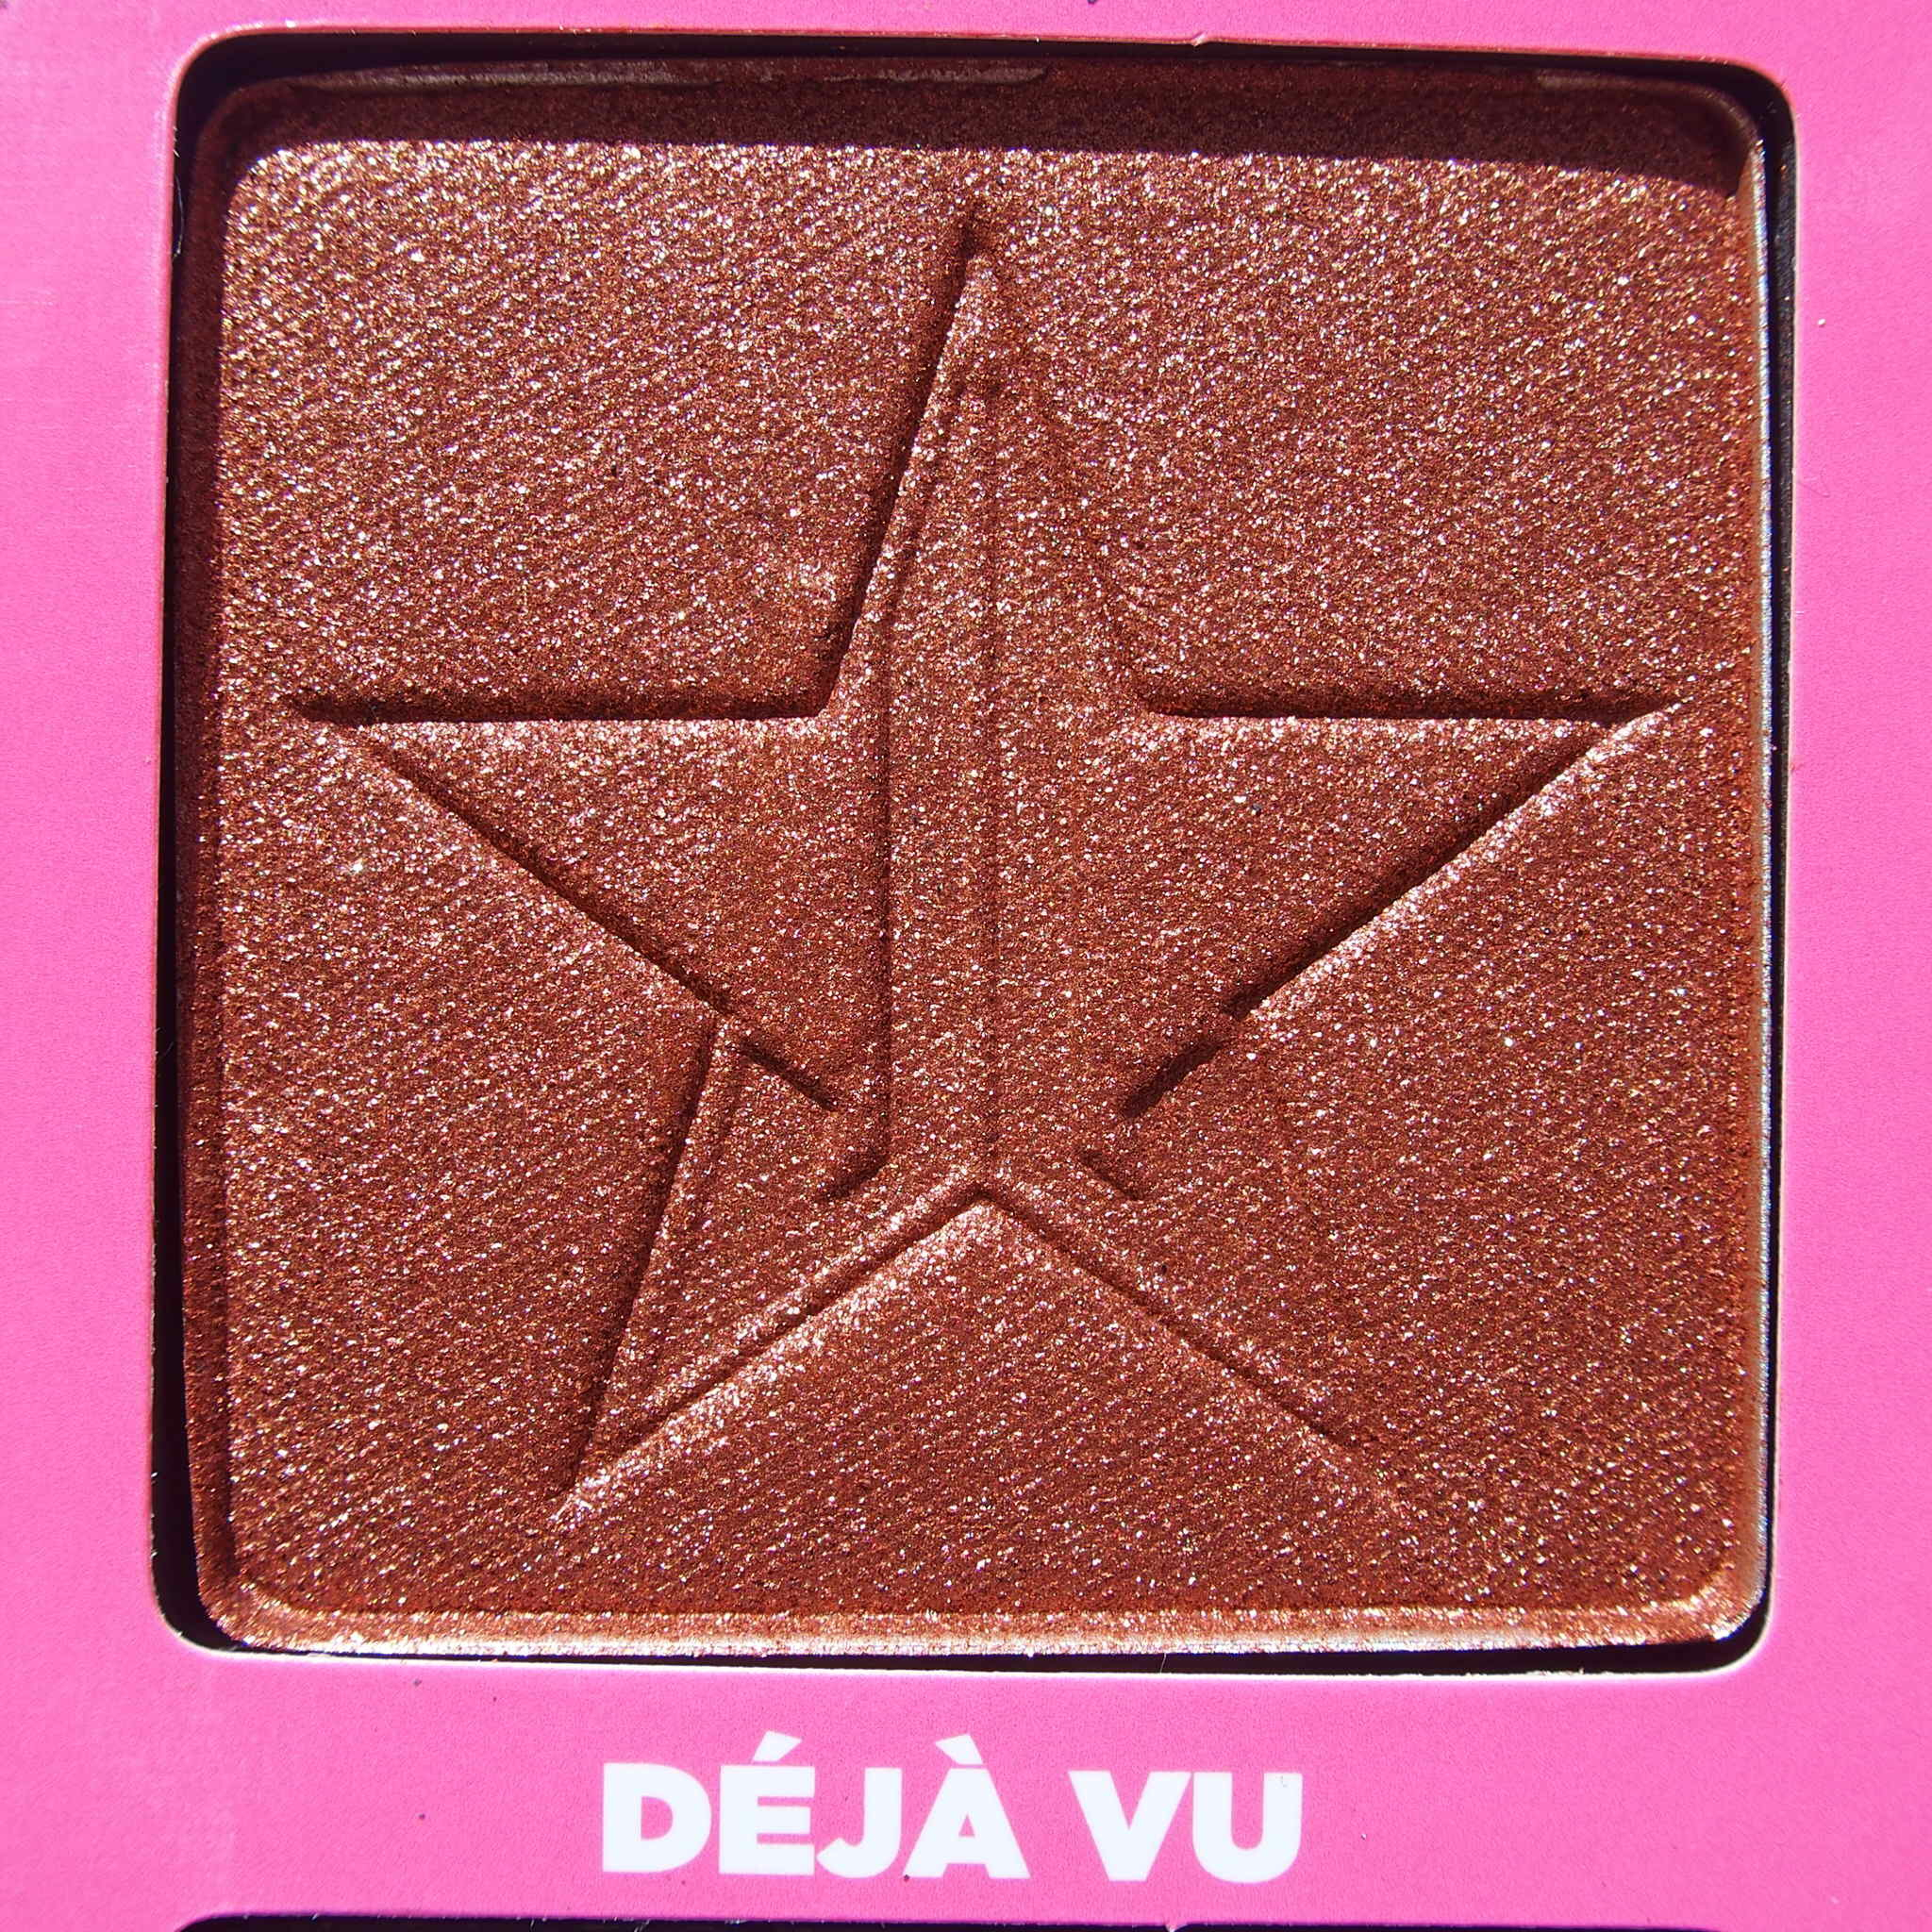 Close up of Deja Vu from the Jeffree Star Androgyny Palette